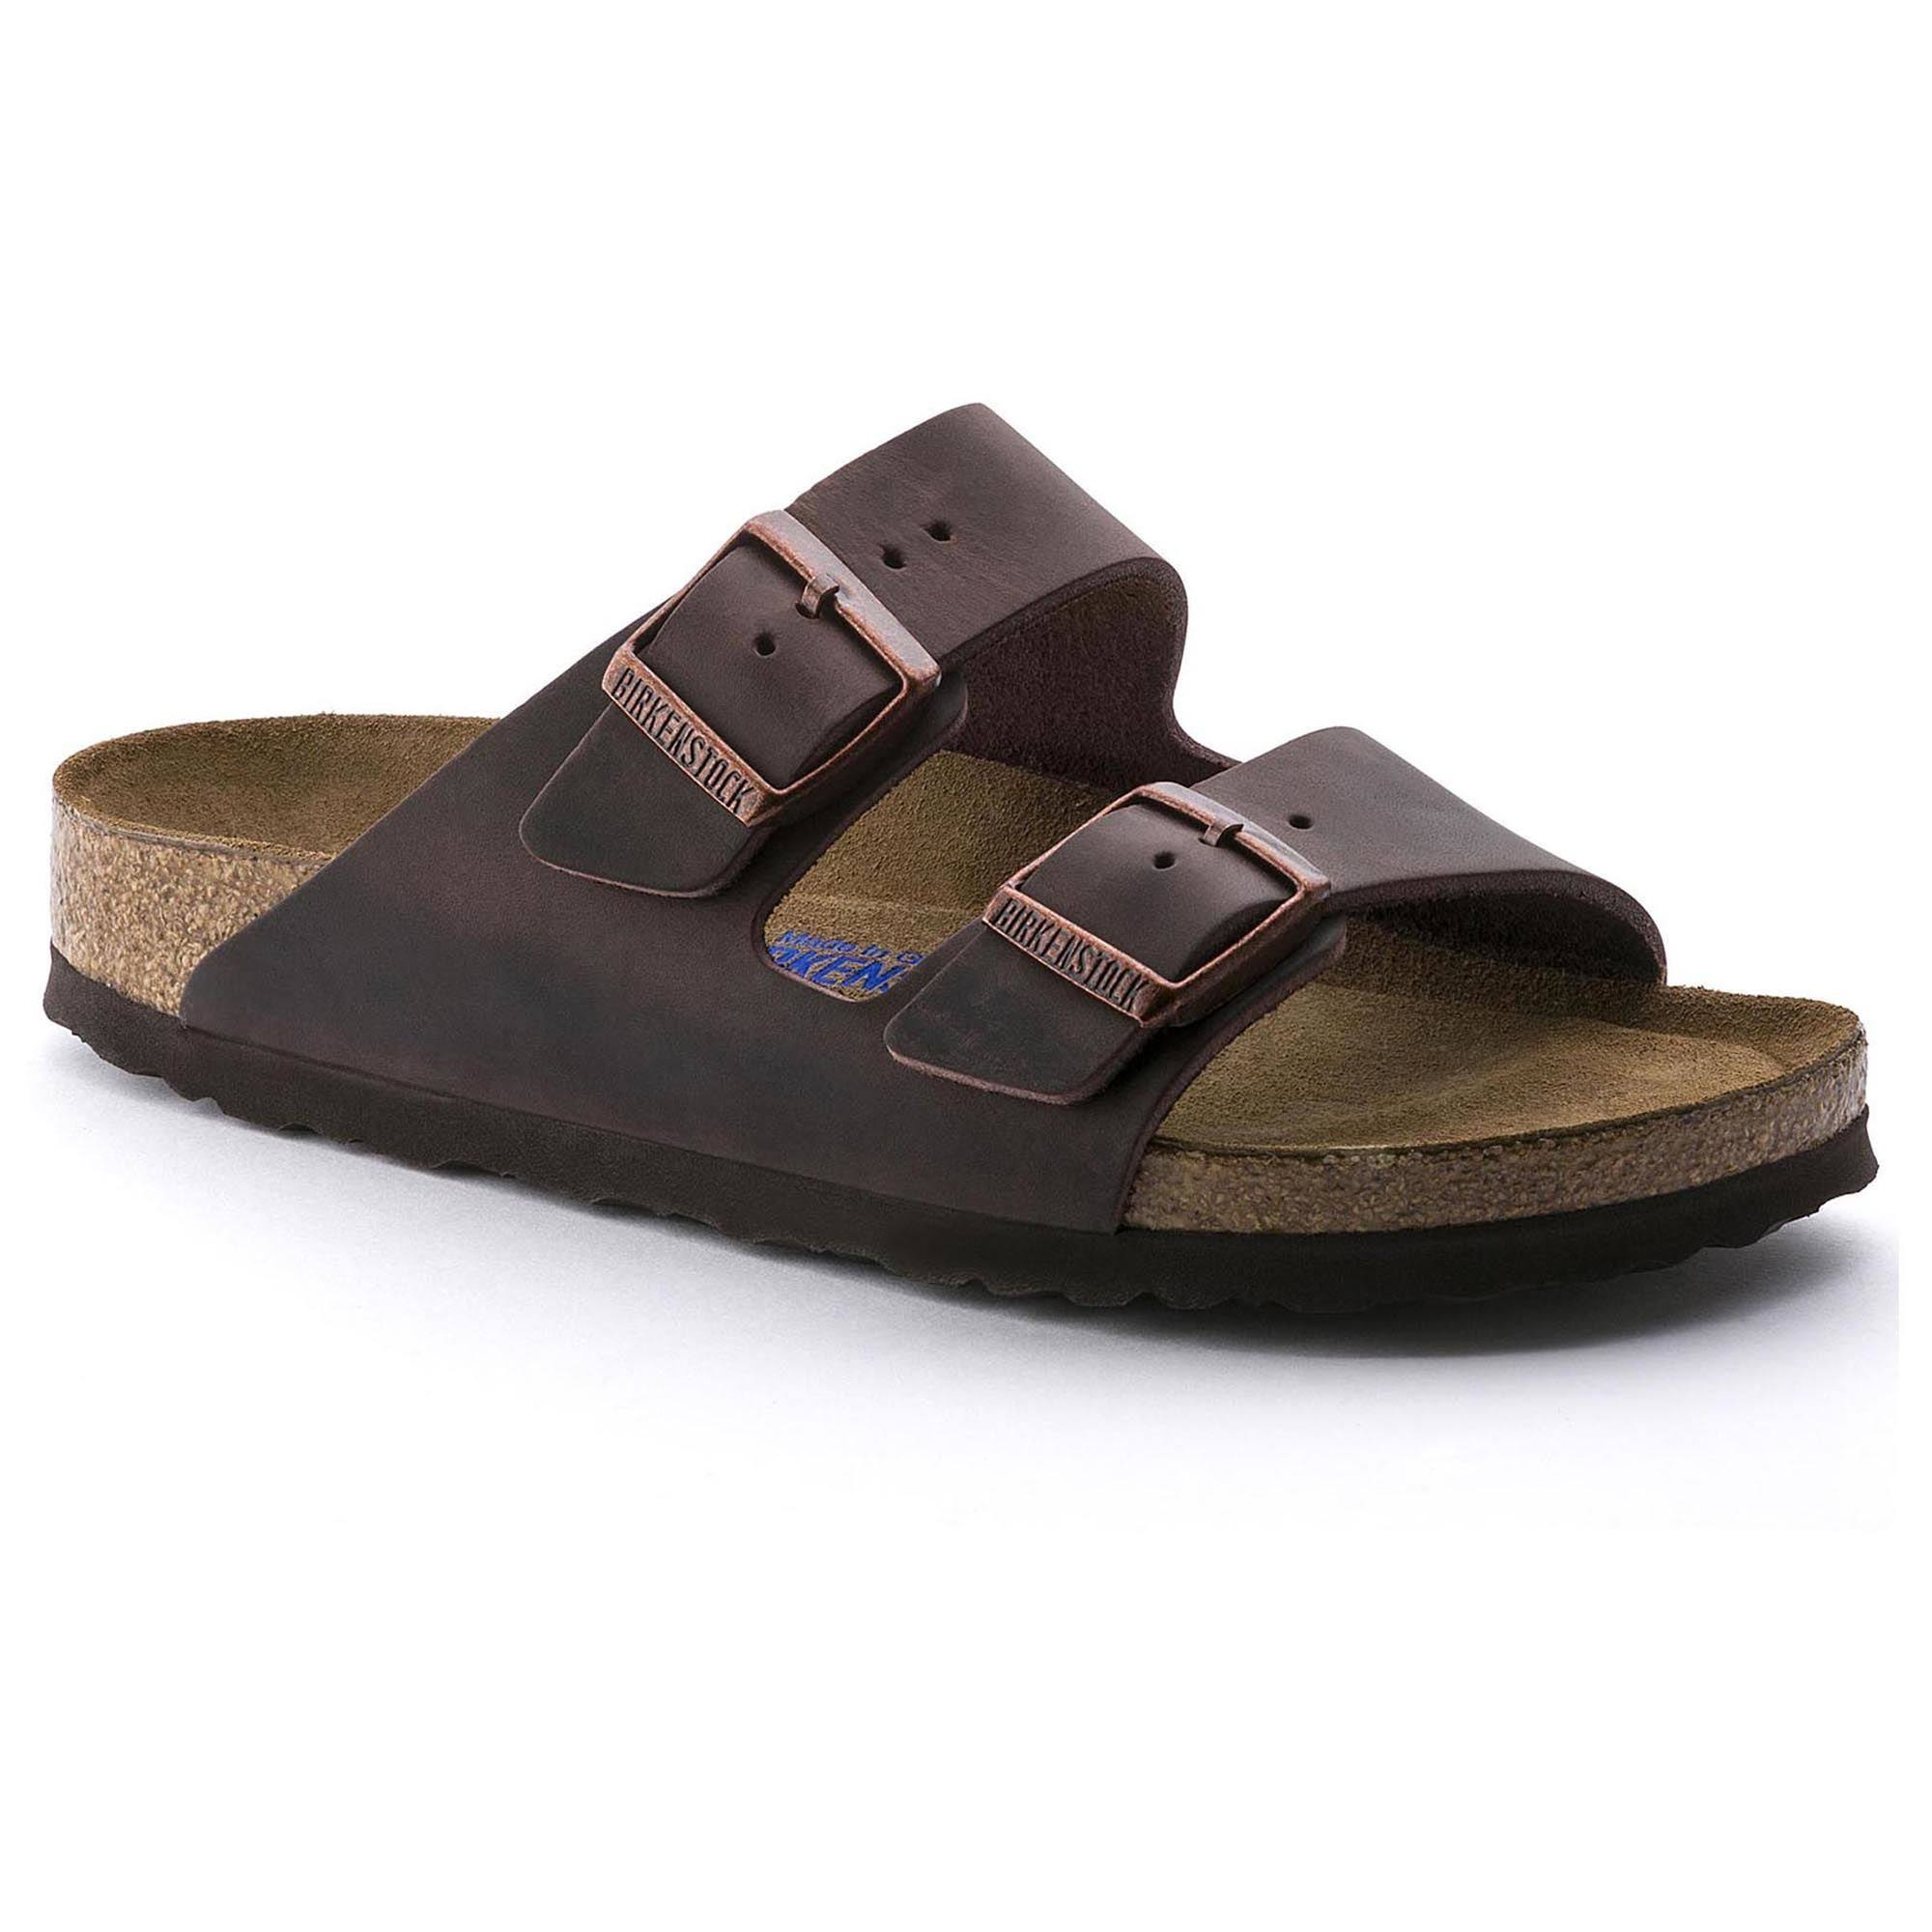 Birkenstock Arizona Soft Footbed Leather Sandal - Brown, 36 EU